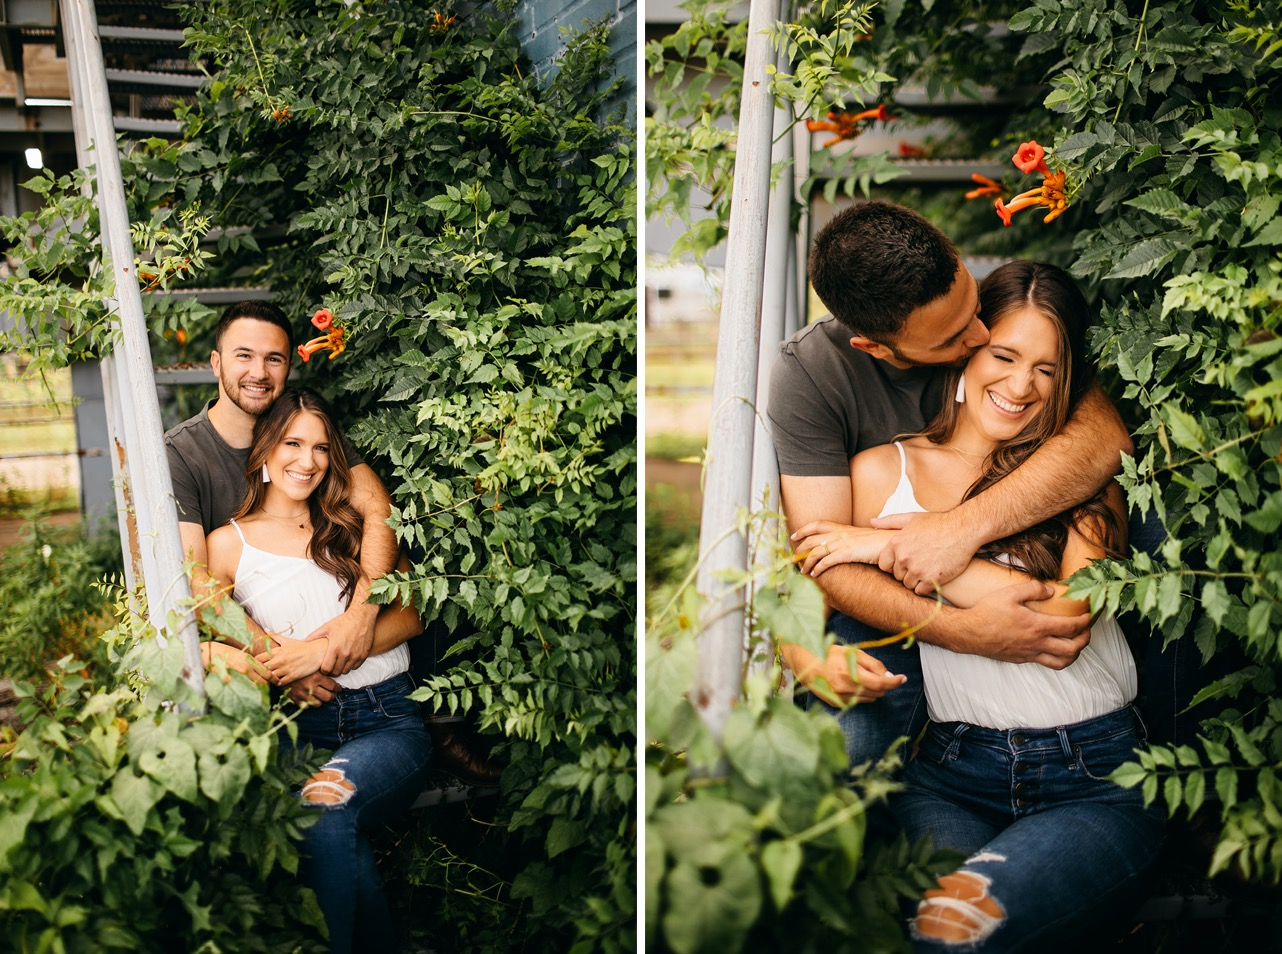 A man and woman pose together on a set of overgrown metal stairs at The Foundry in Chattanooga.